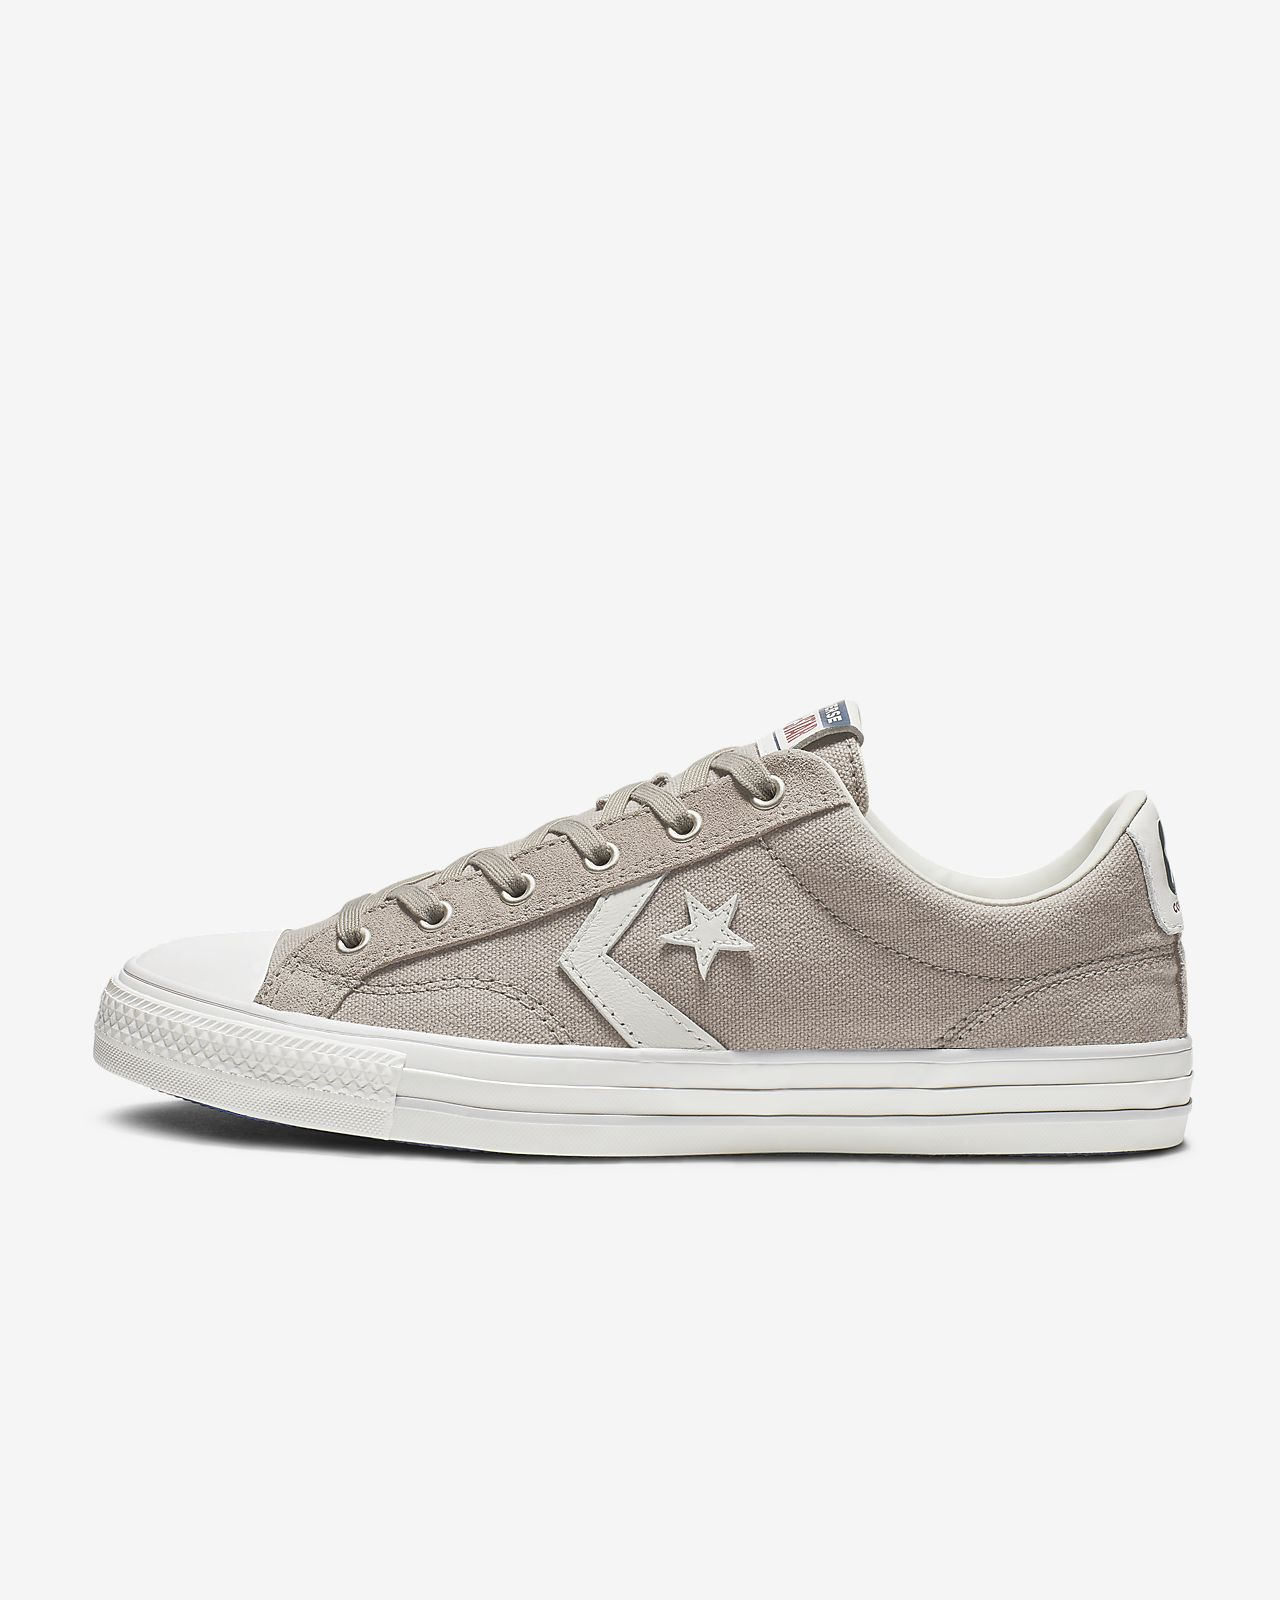 Star Player Low Top Unisex Shoe